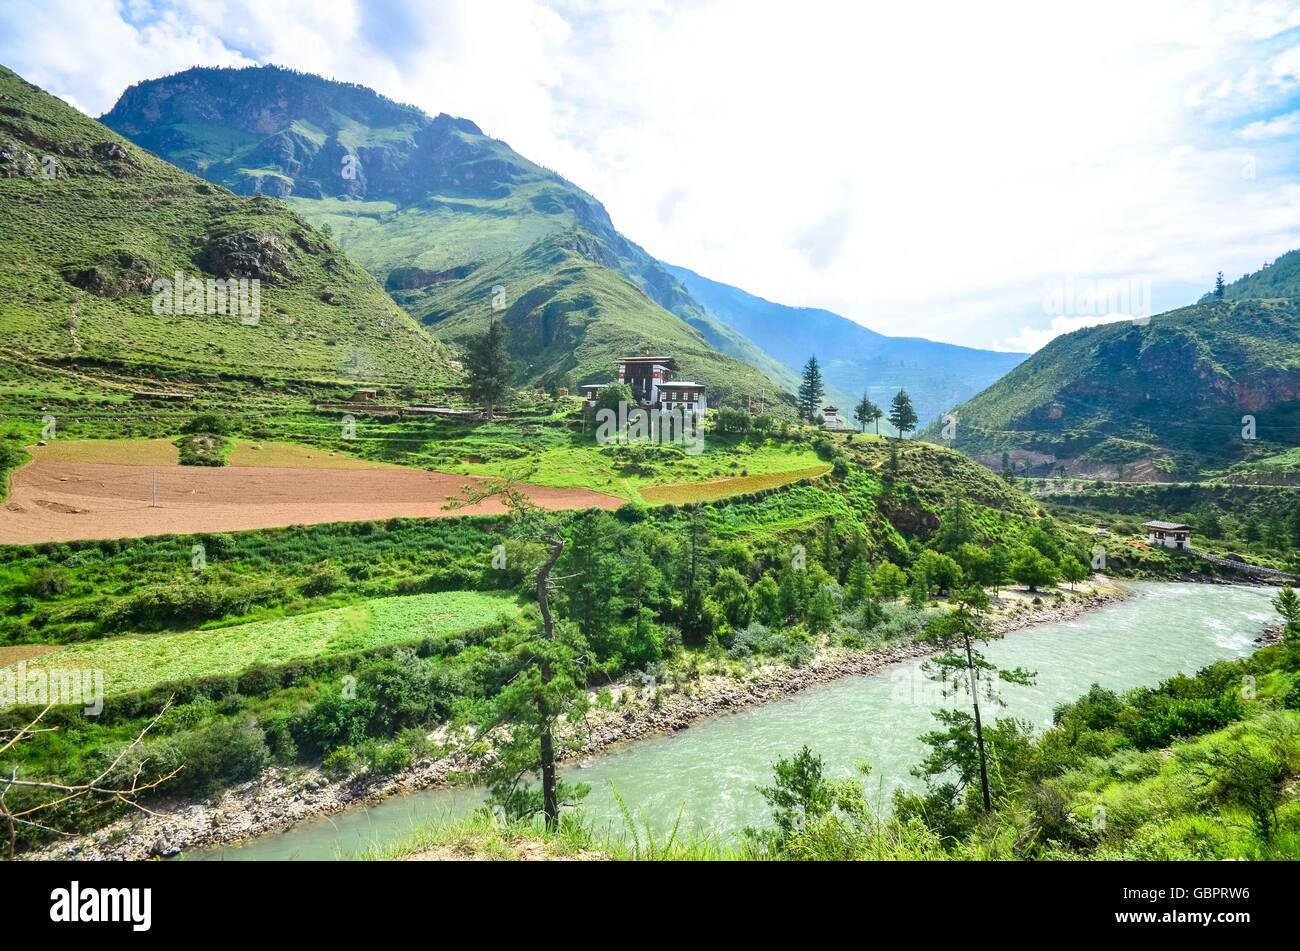 Breathtaking View of Mountains in Bhutan - Stock Image